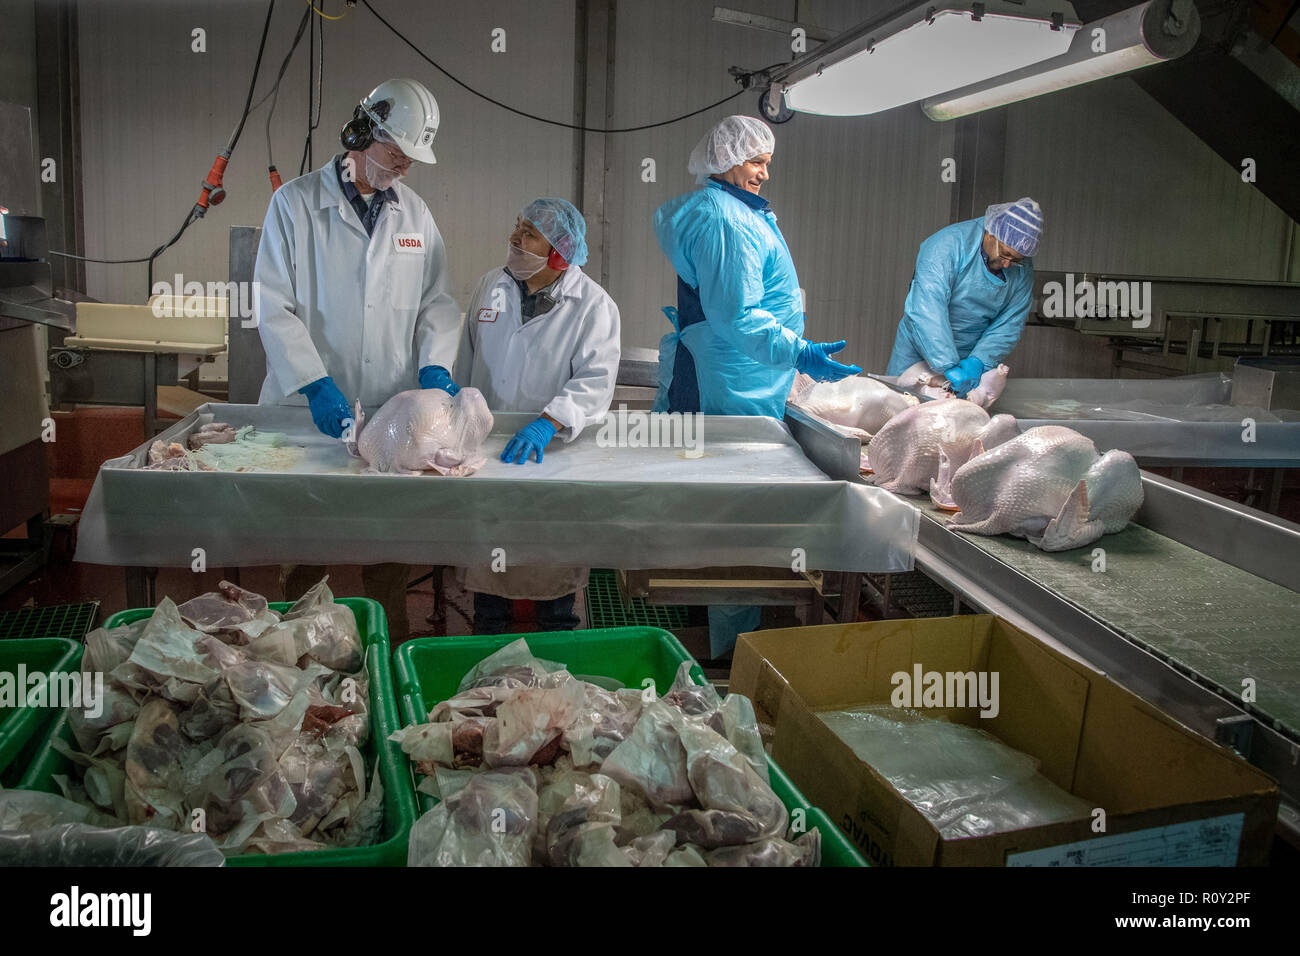 Thanksgiving turkeys are processed and graded by USDA inspectors at Plainville Farms Turkey Processing plant October 31, 2018 in New Oxford, Pennsylvania. - Stock Image